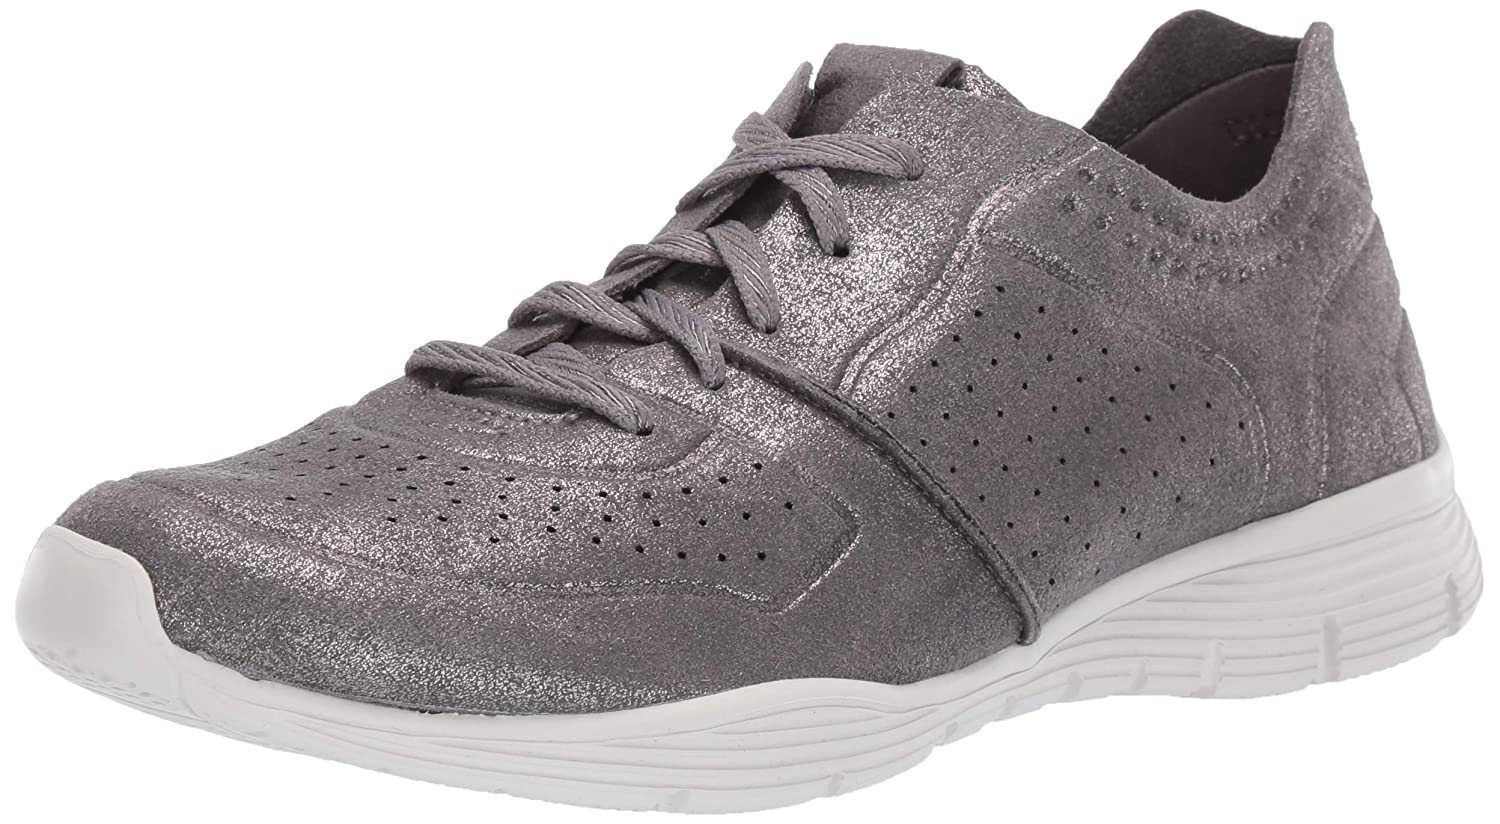 GUNMETAL Skechers Women's Seager-Major League-Perfed Metallic Lace Up Jogger